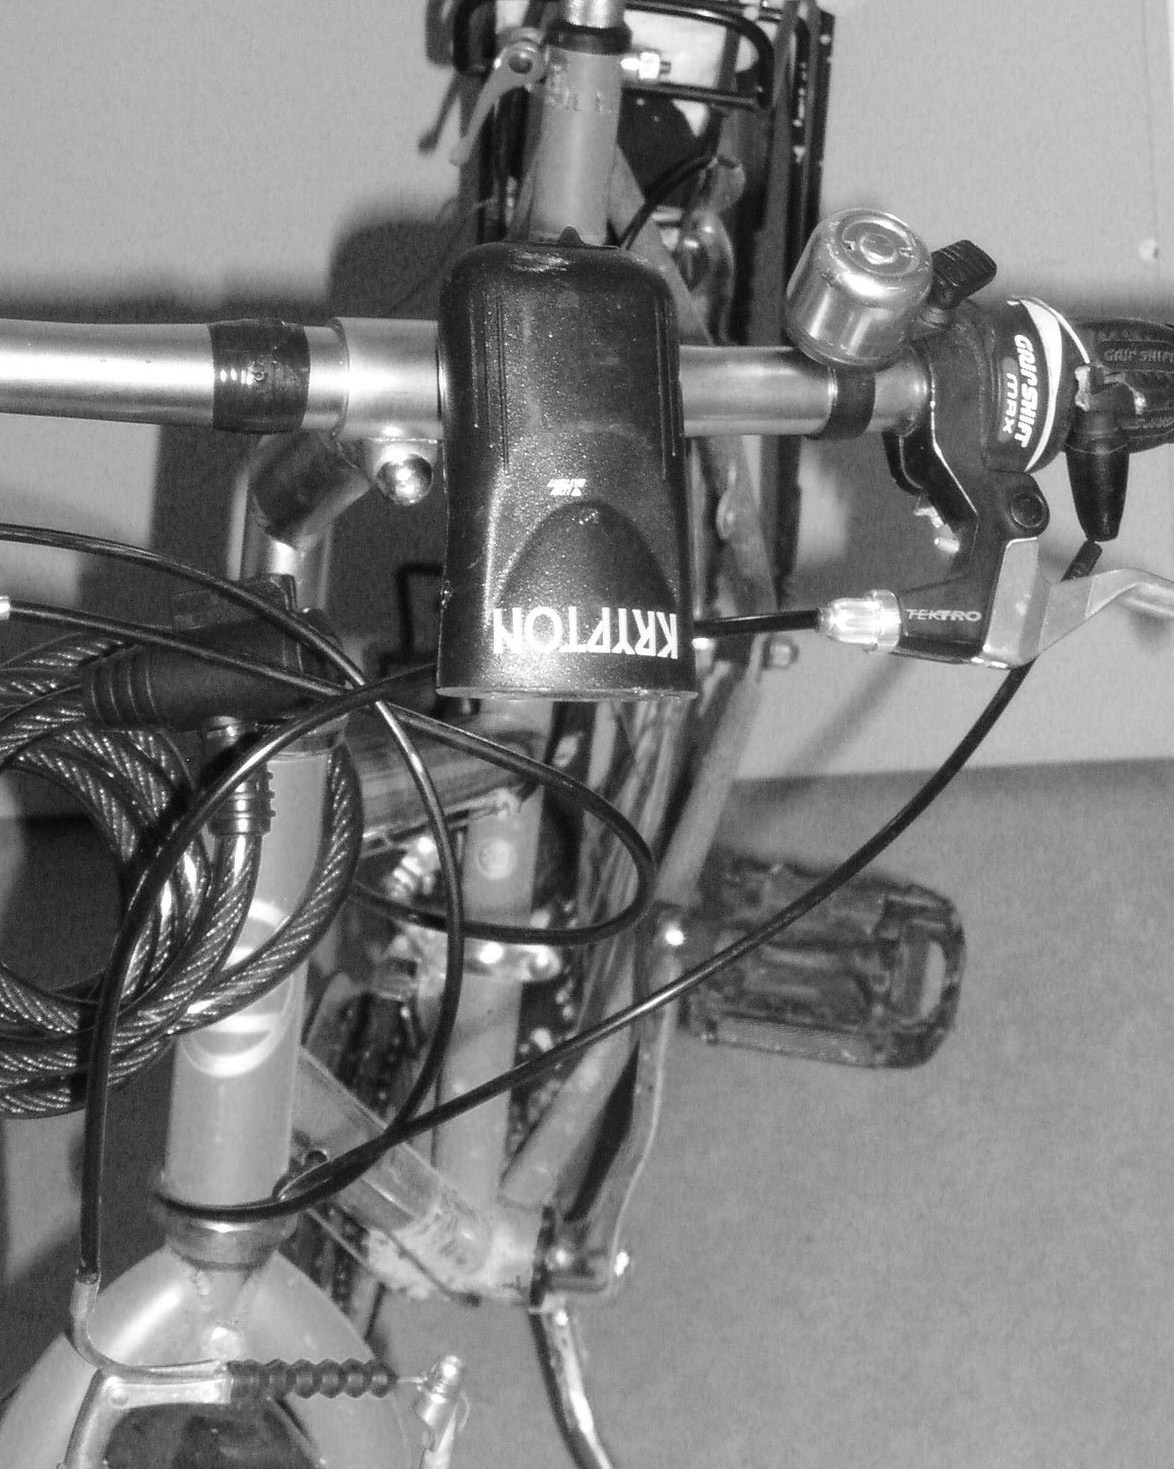 Bike Gear Shifter Repair d bike repair